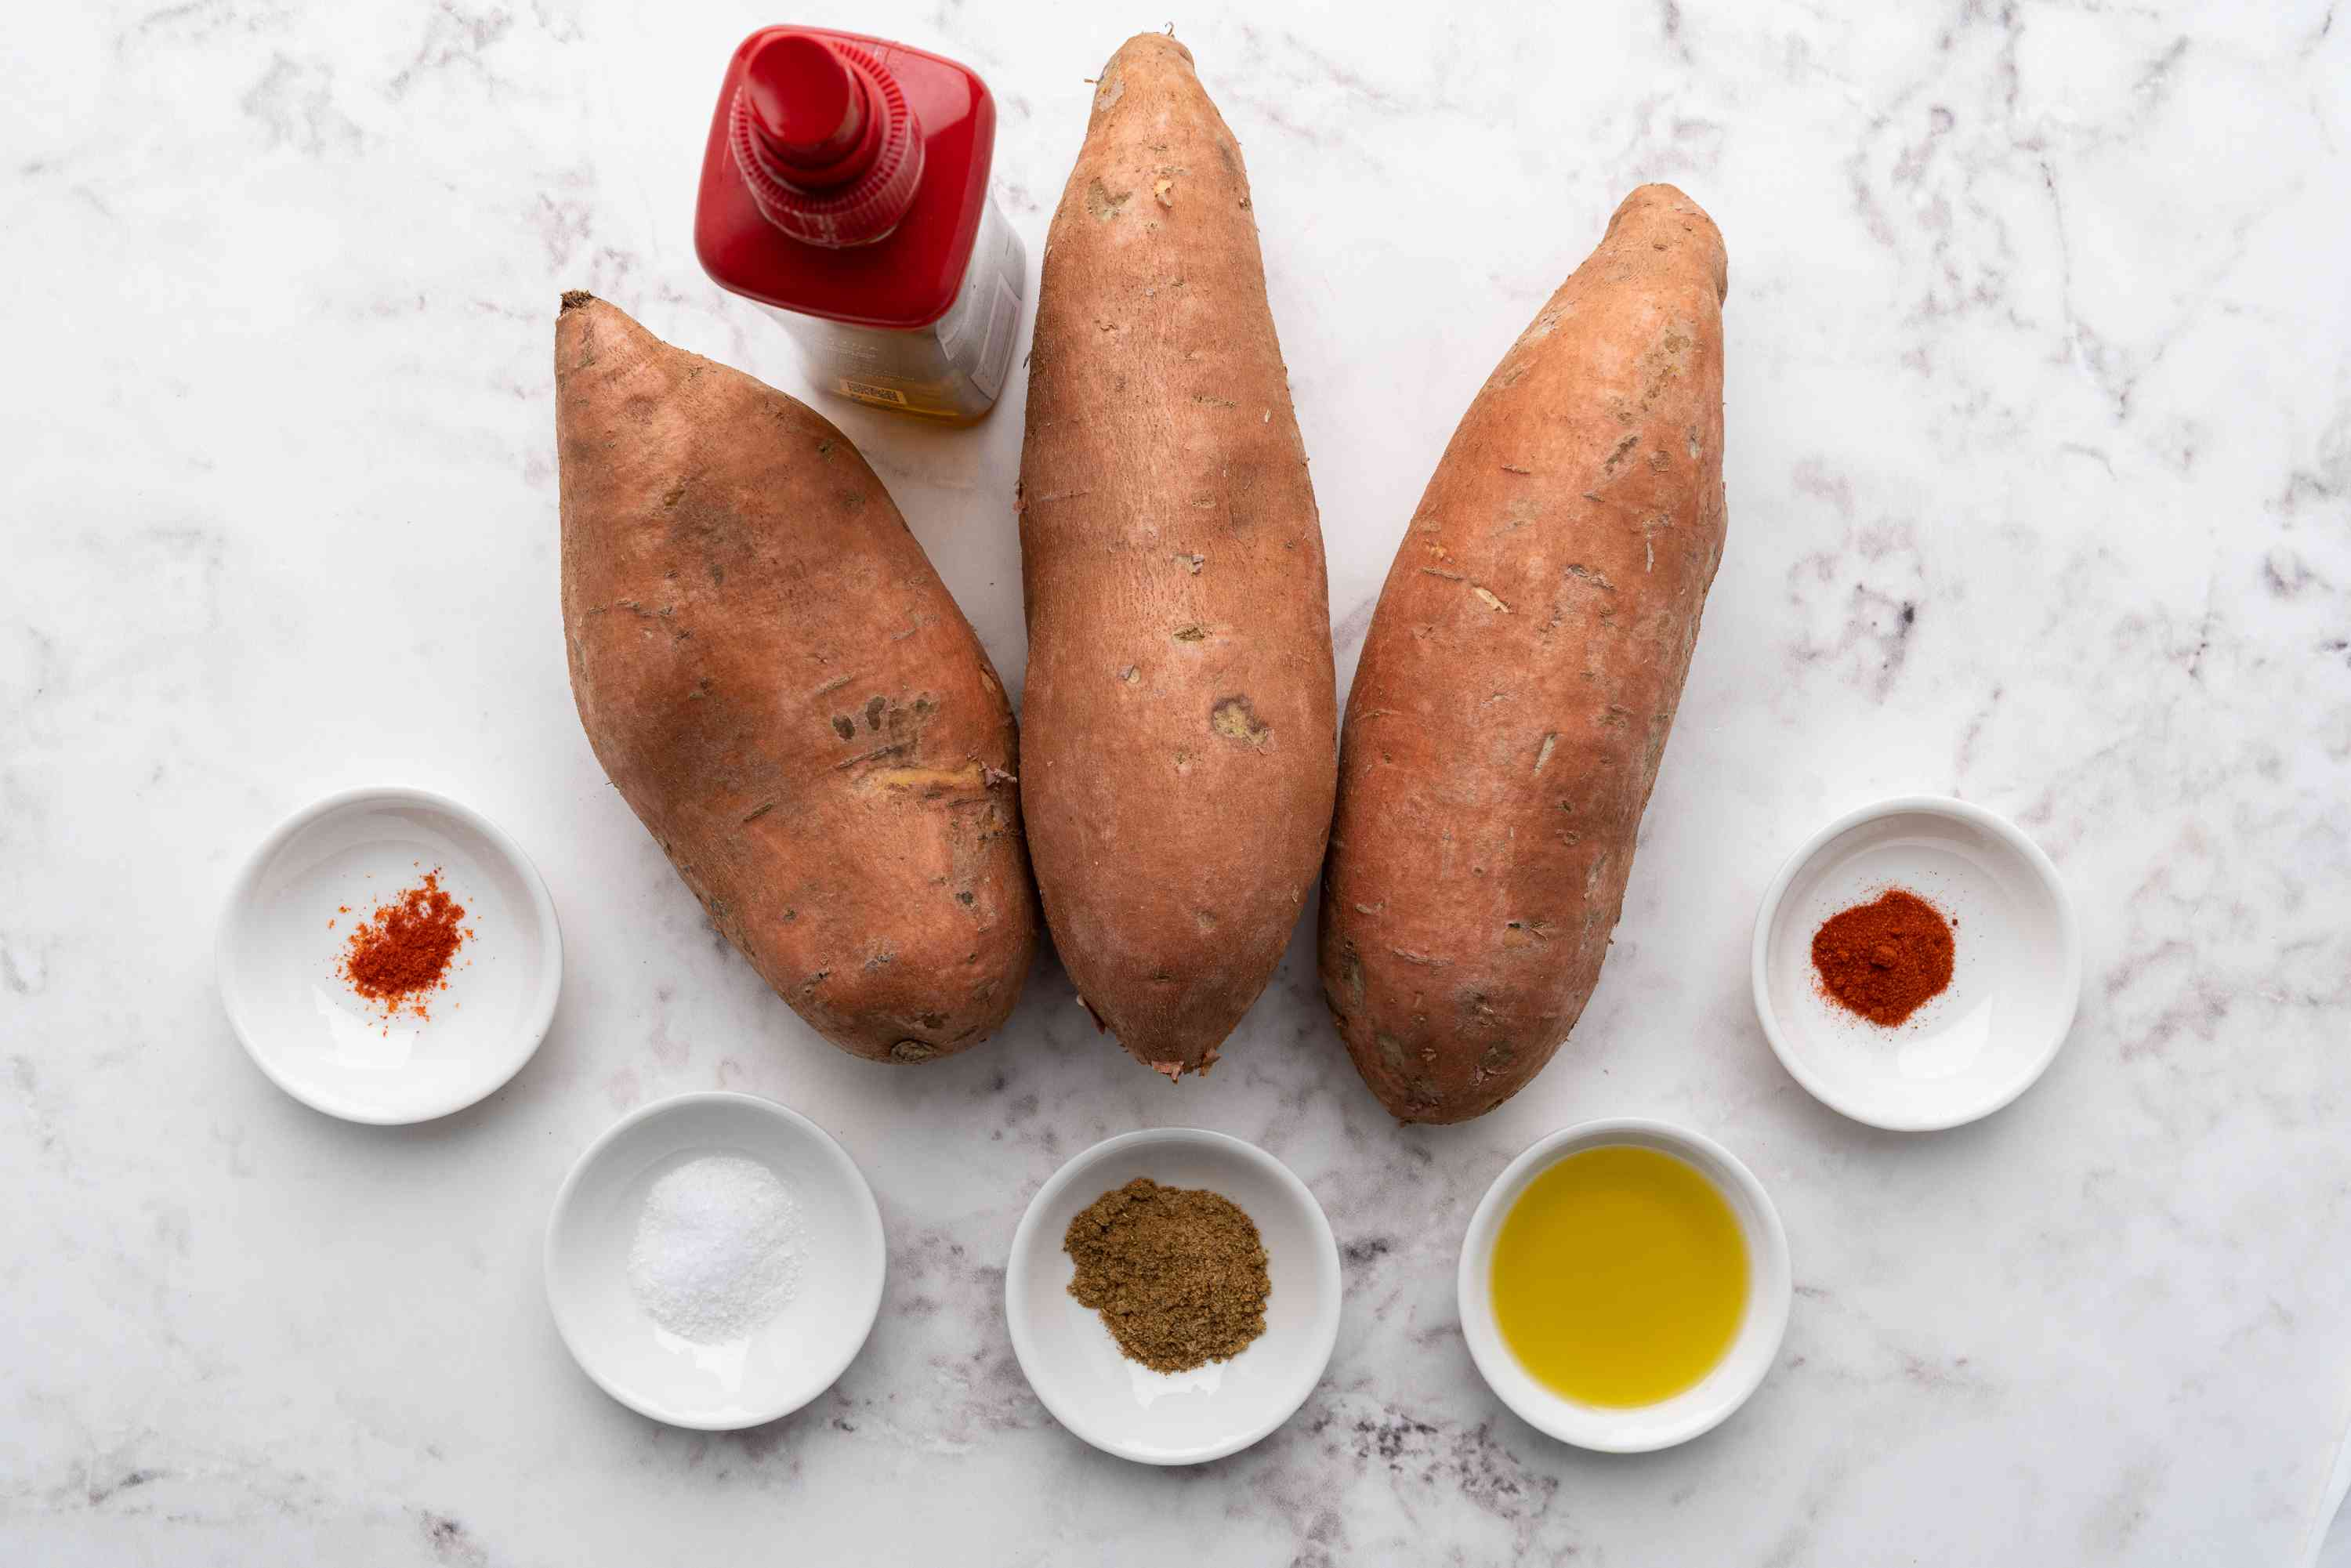 Ingredients for low fat sweet potato fries